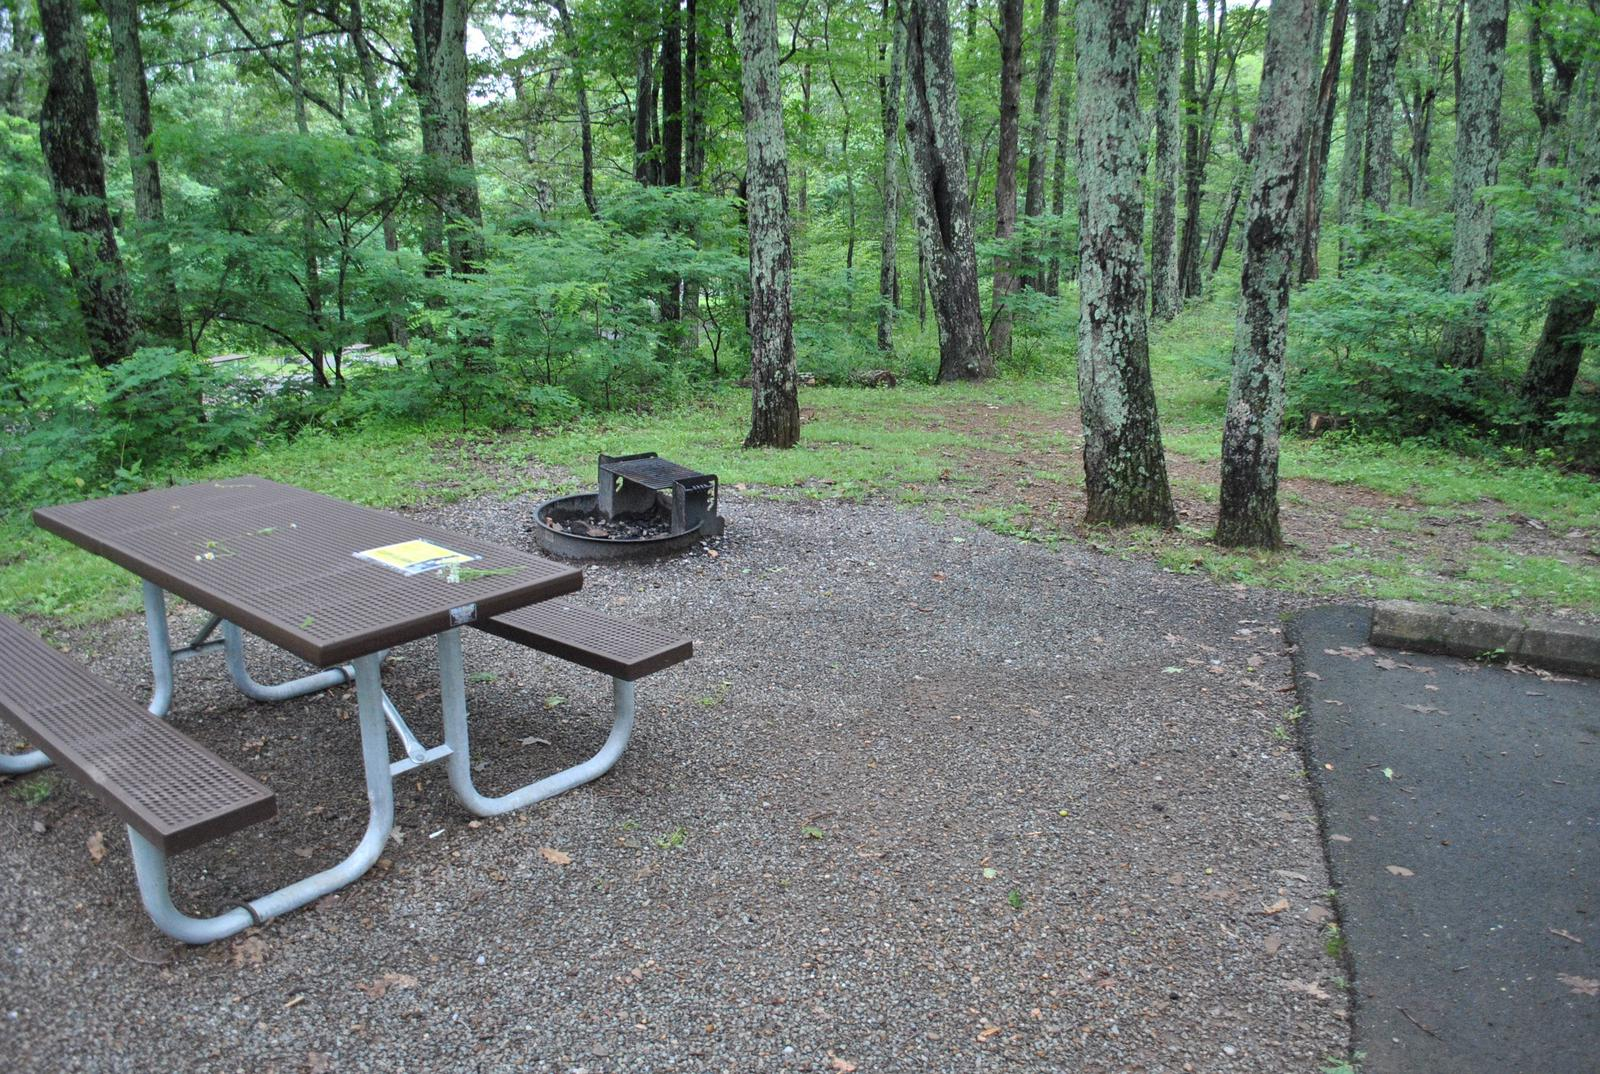 Mathews Arm Campground – Site A026